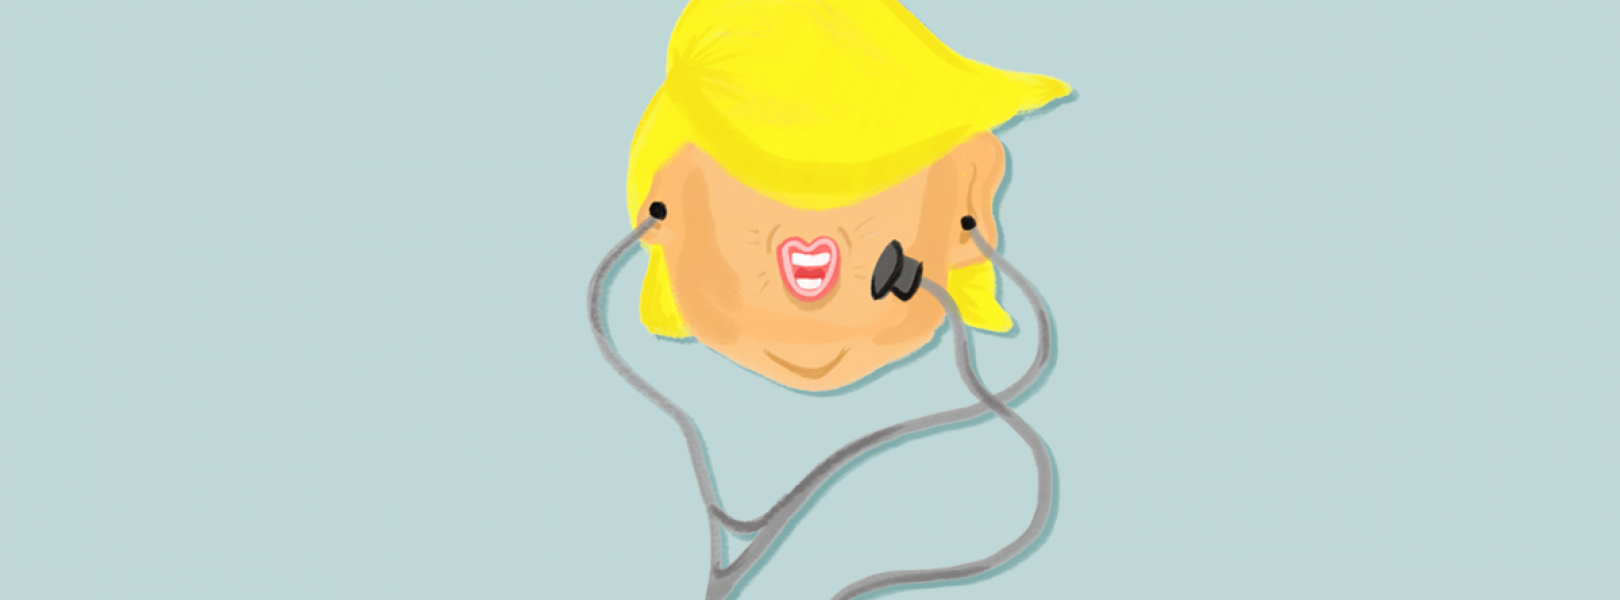 trump-health-care.png